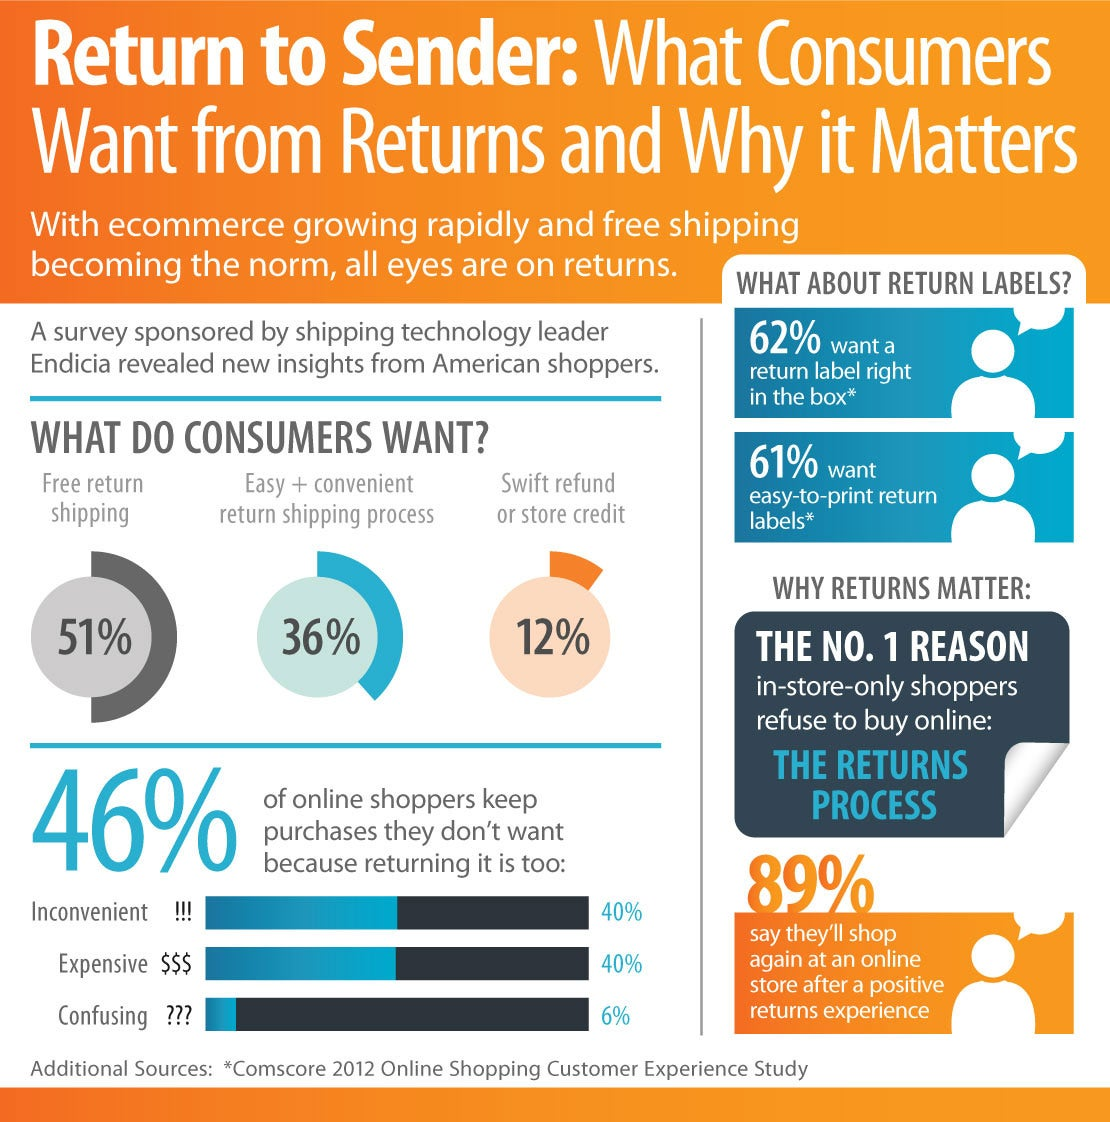 4 Things Shoppers Want in an Online Retailer's Return Policy